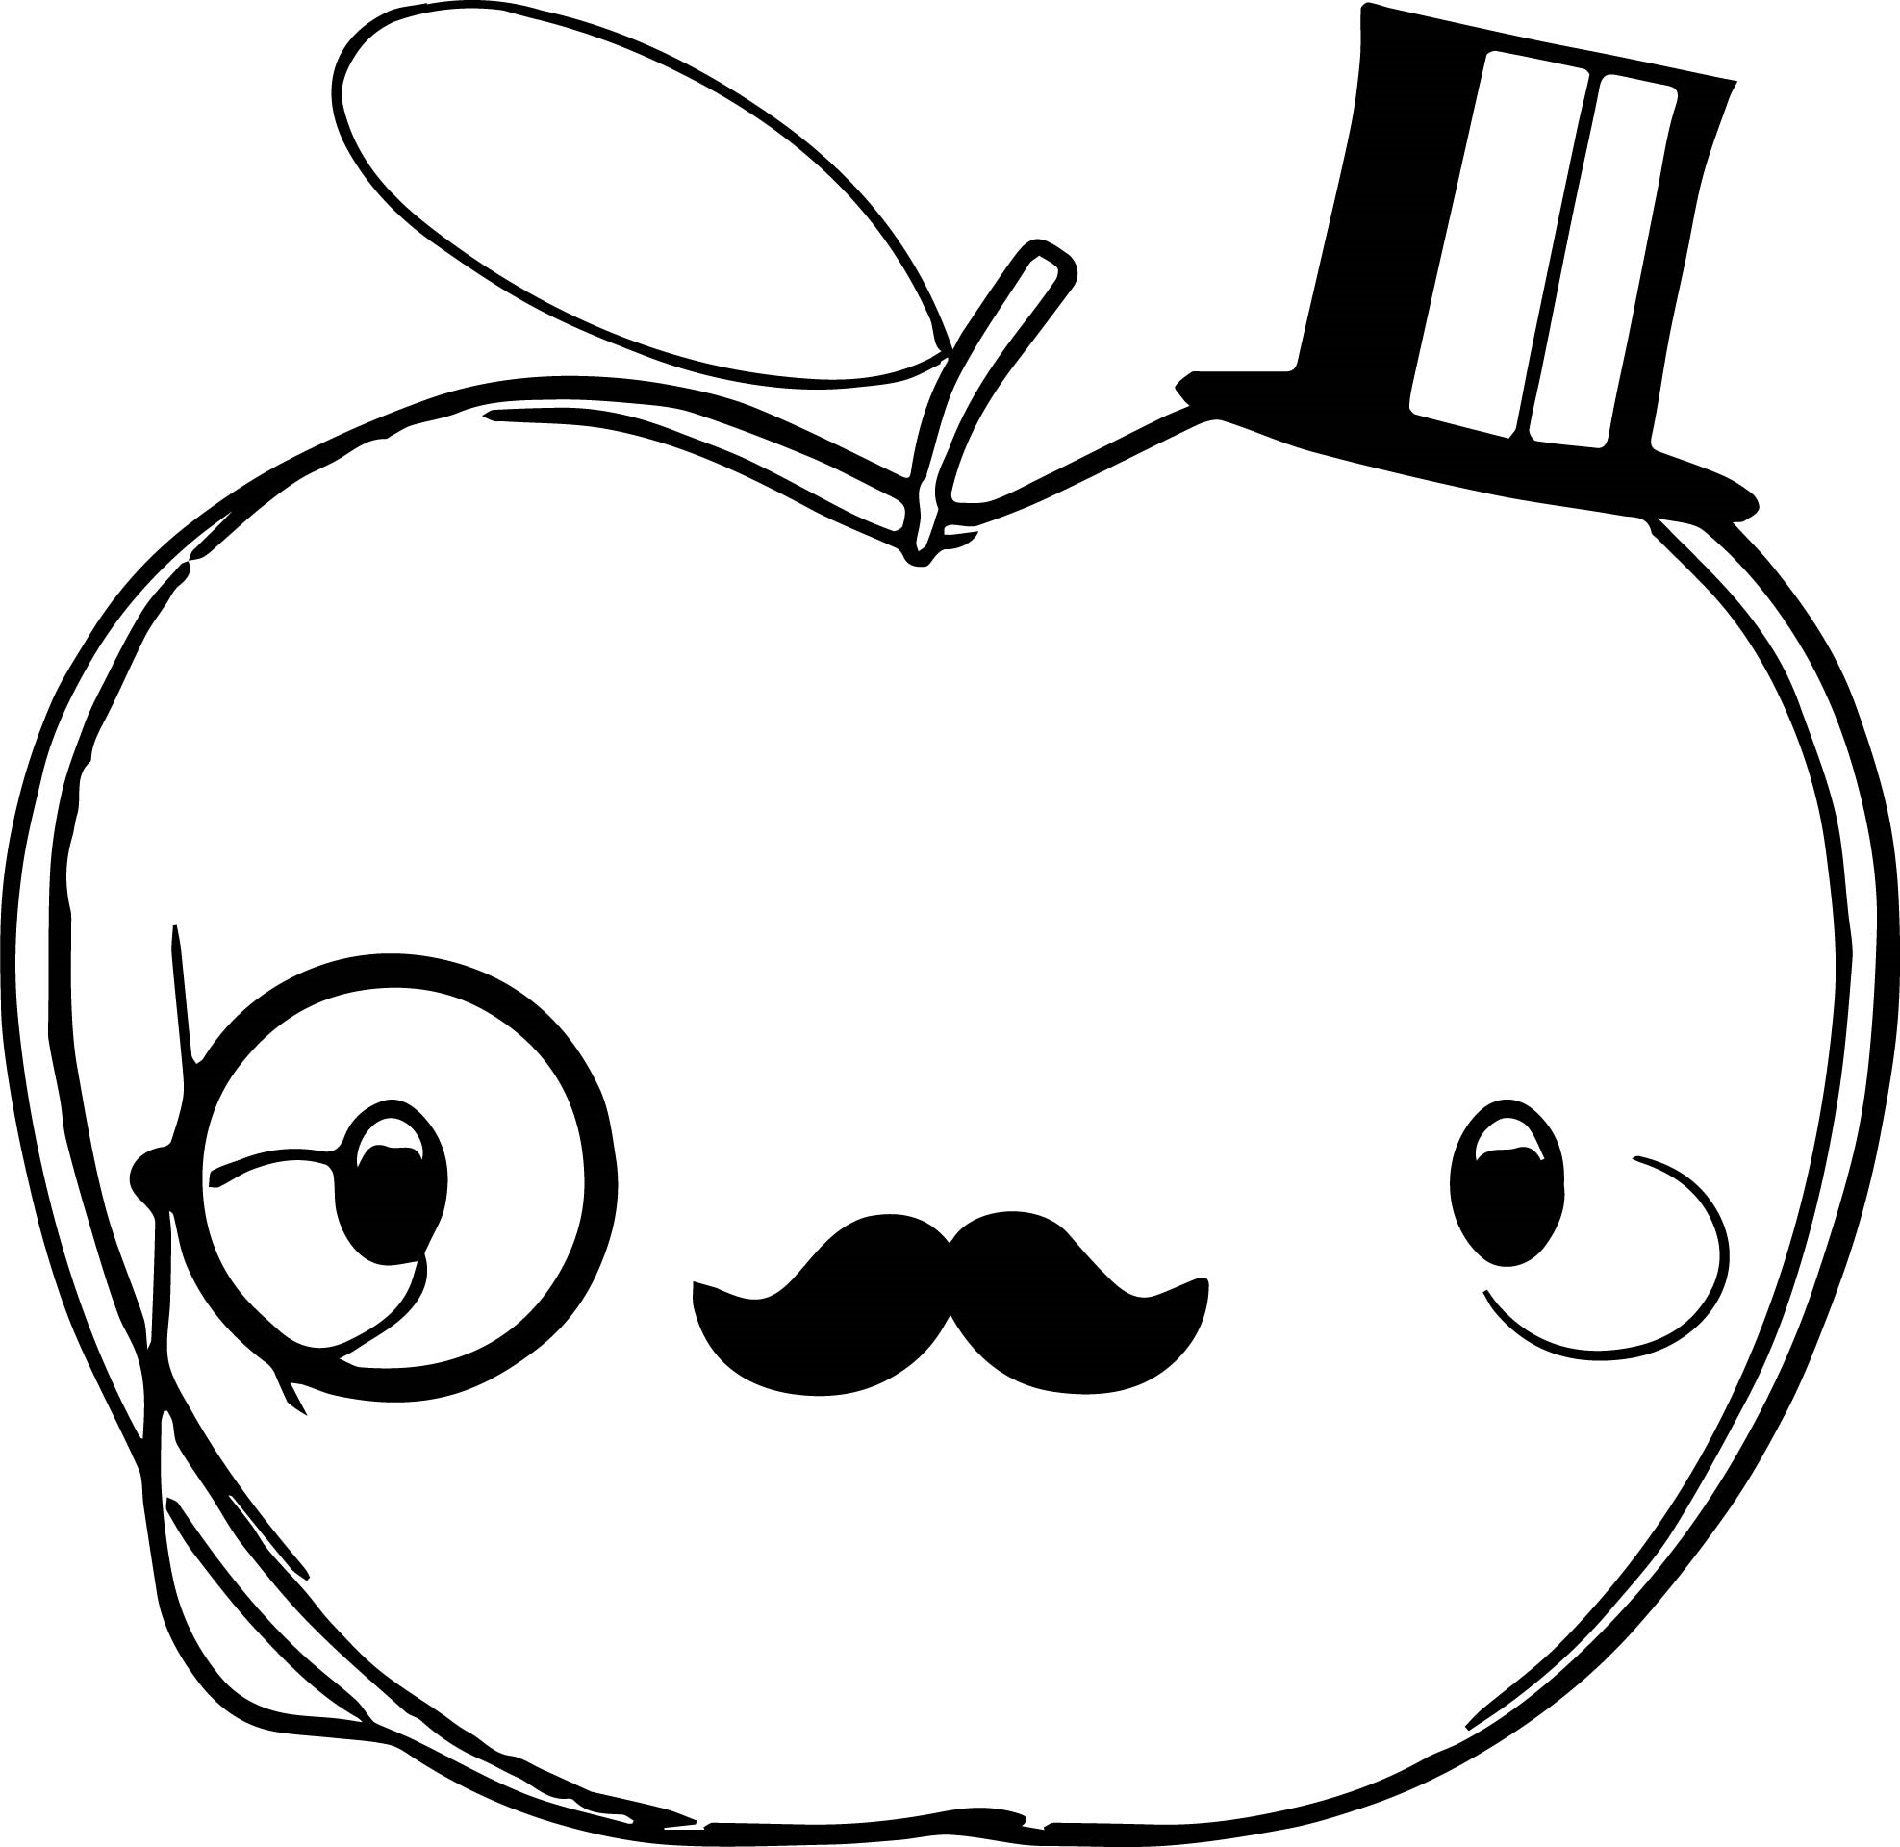 a apple coloring sheet apple coloring pages the sun flower pages a coloring sheet apple